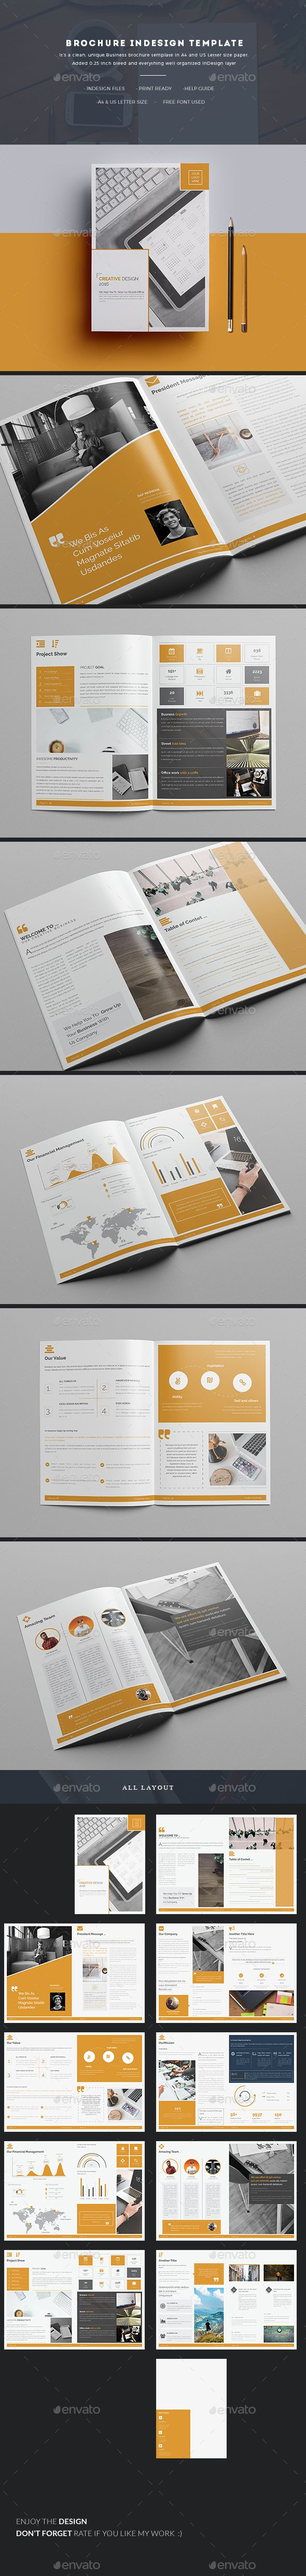 Brochure InDesign Template | Brochures, Indesign templates and Template